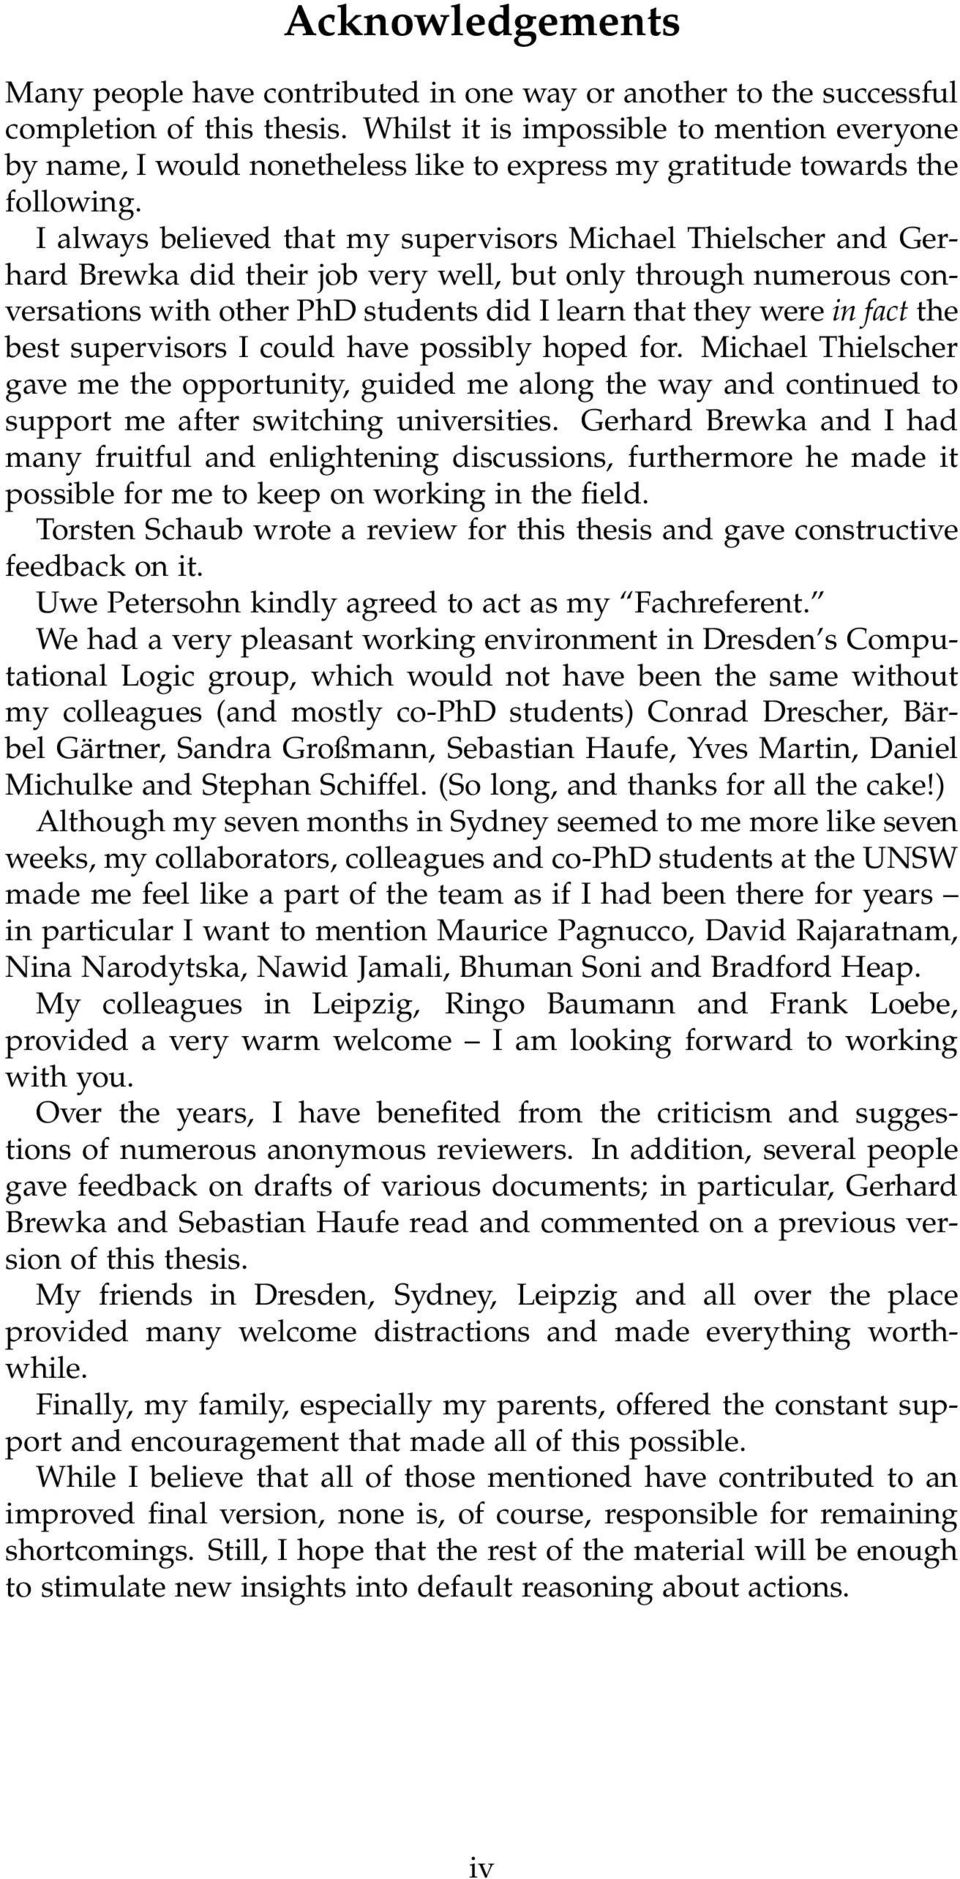 I always believed that my supervisors Michael Thielscher and Gerhard Brewka did their job very well, but only through numerous conversations with other PhD students did I learn that they were in fact